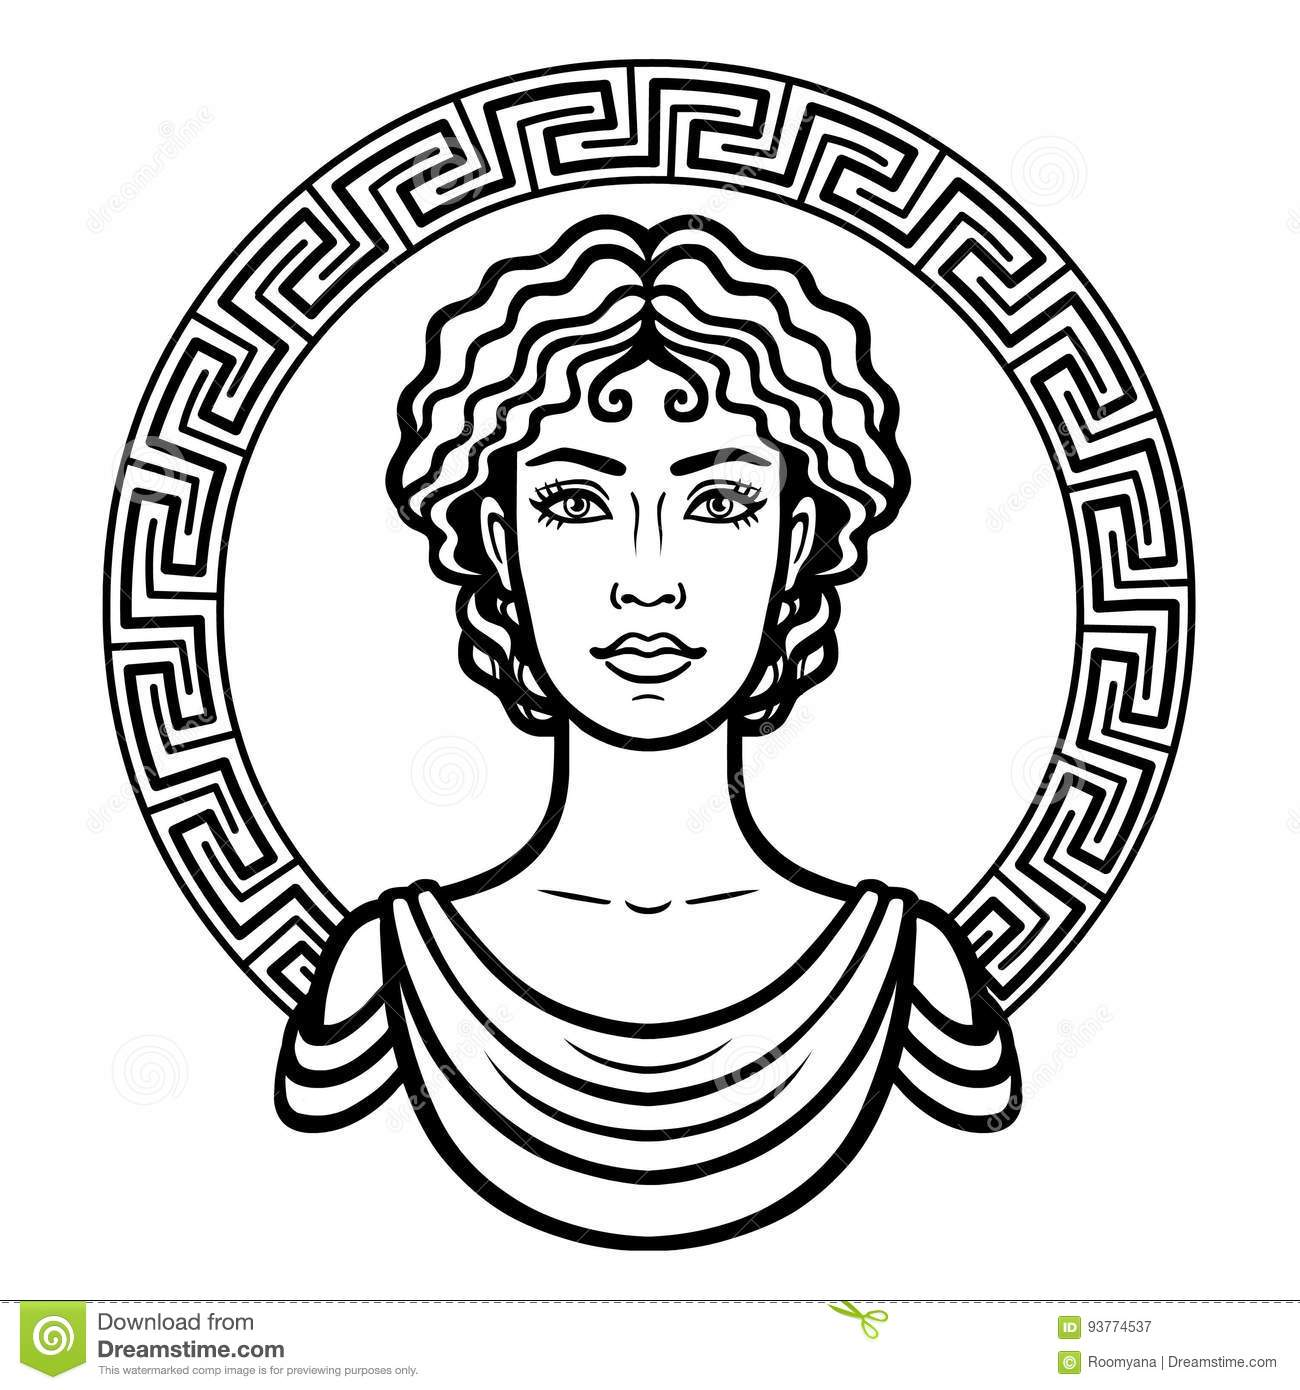 Linear portrait of the young Greek woman with a traditional hairstyle. Decorative circle.